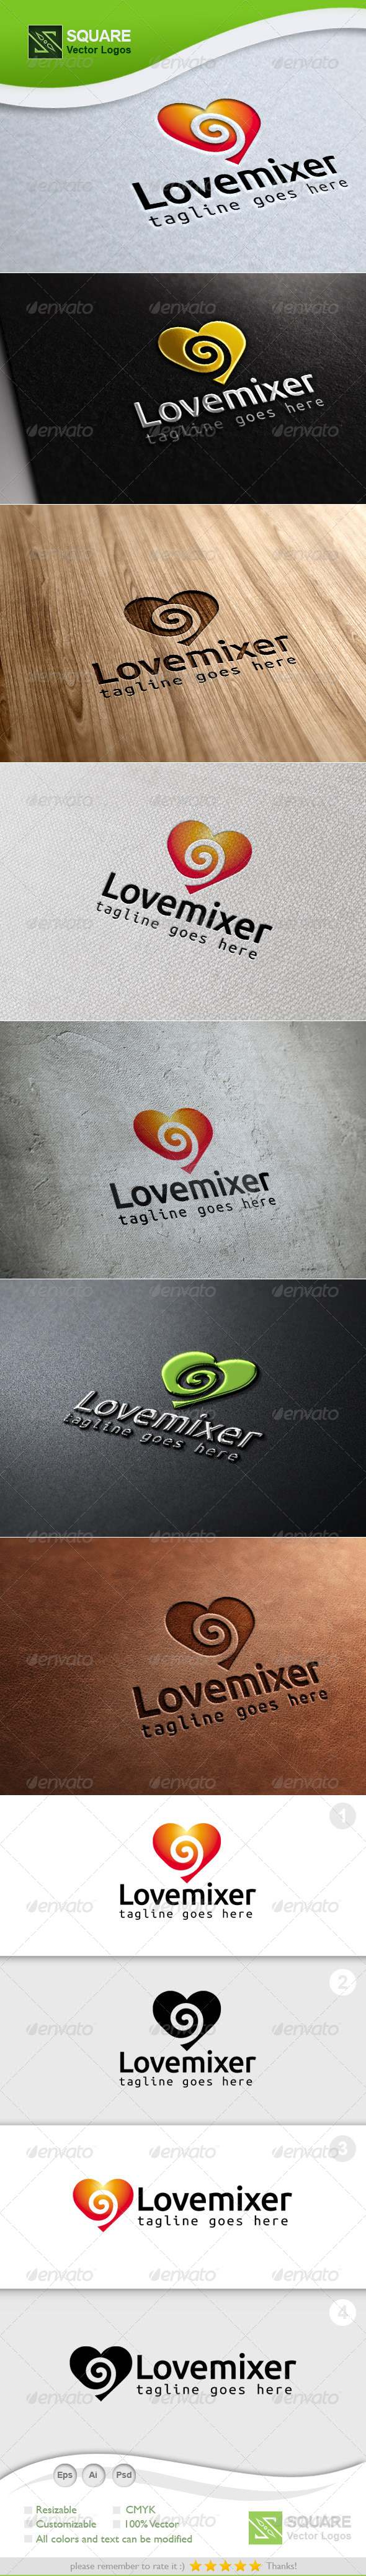 Love, Mixer Vector Logo Template - Symbols Logo Templates